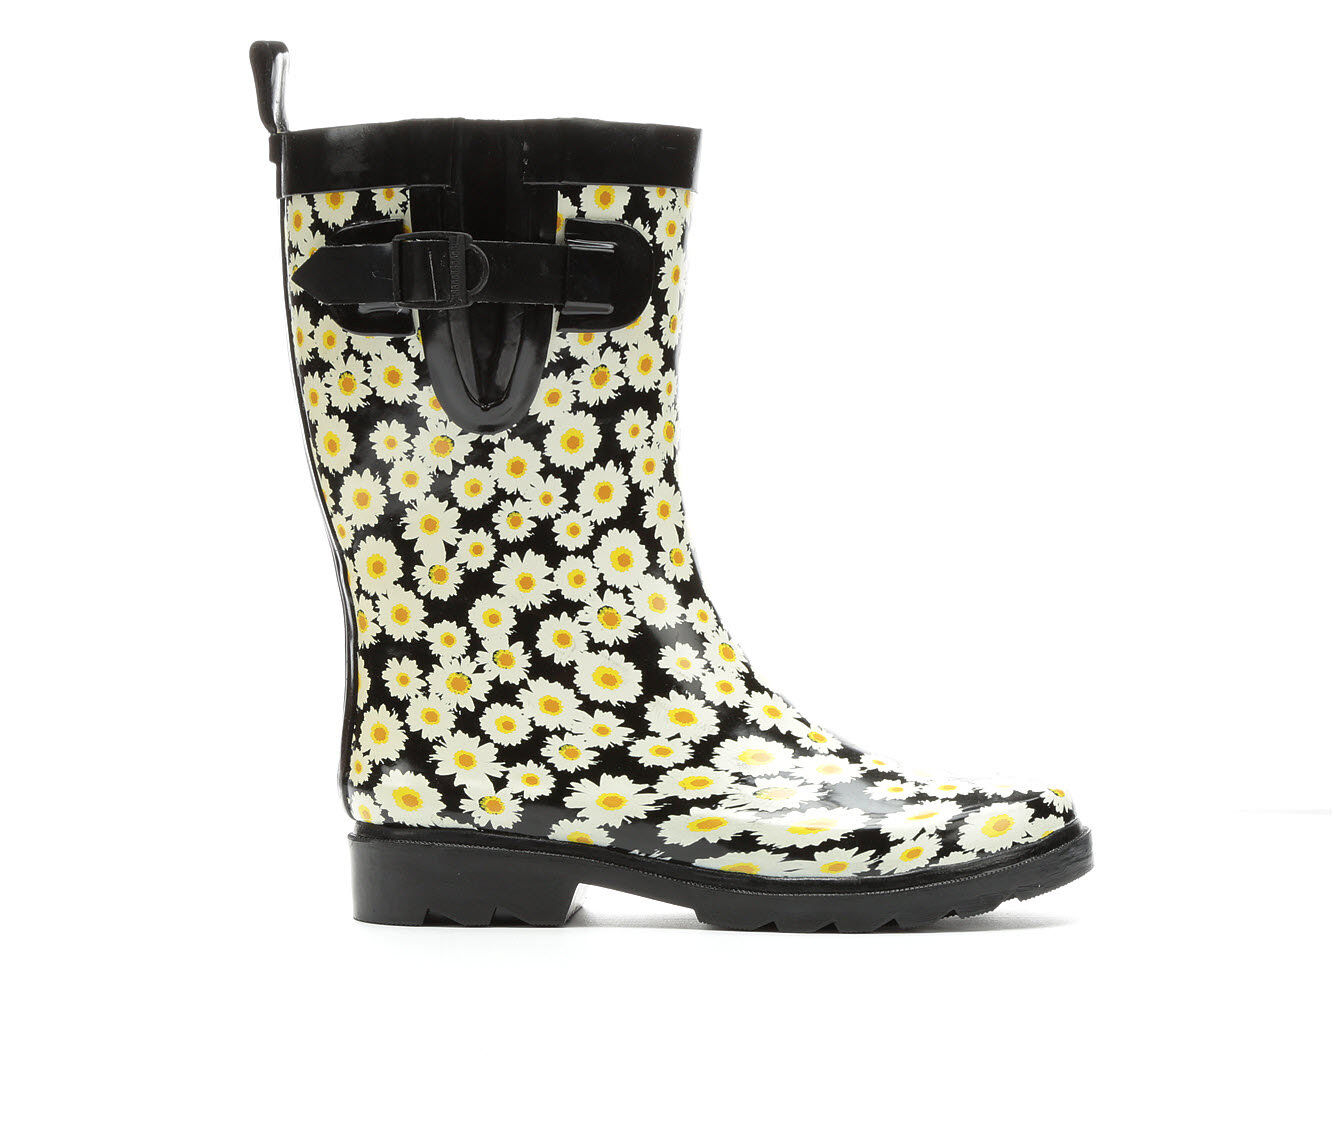 manchester great sale cheap online sale with paypal Women's Capelli New York Daisy Bunch Mid Rain Boots buy cheap recommend 2iaDHEp